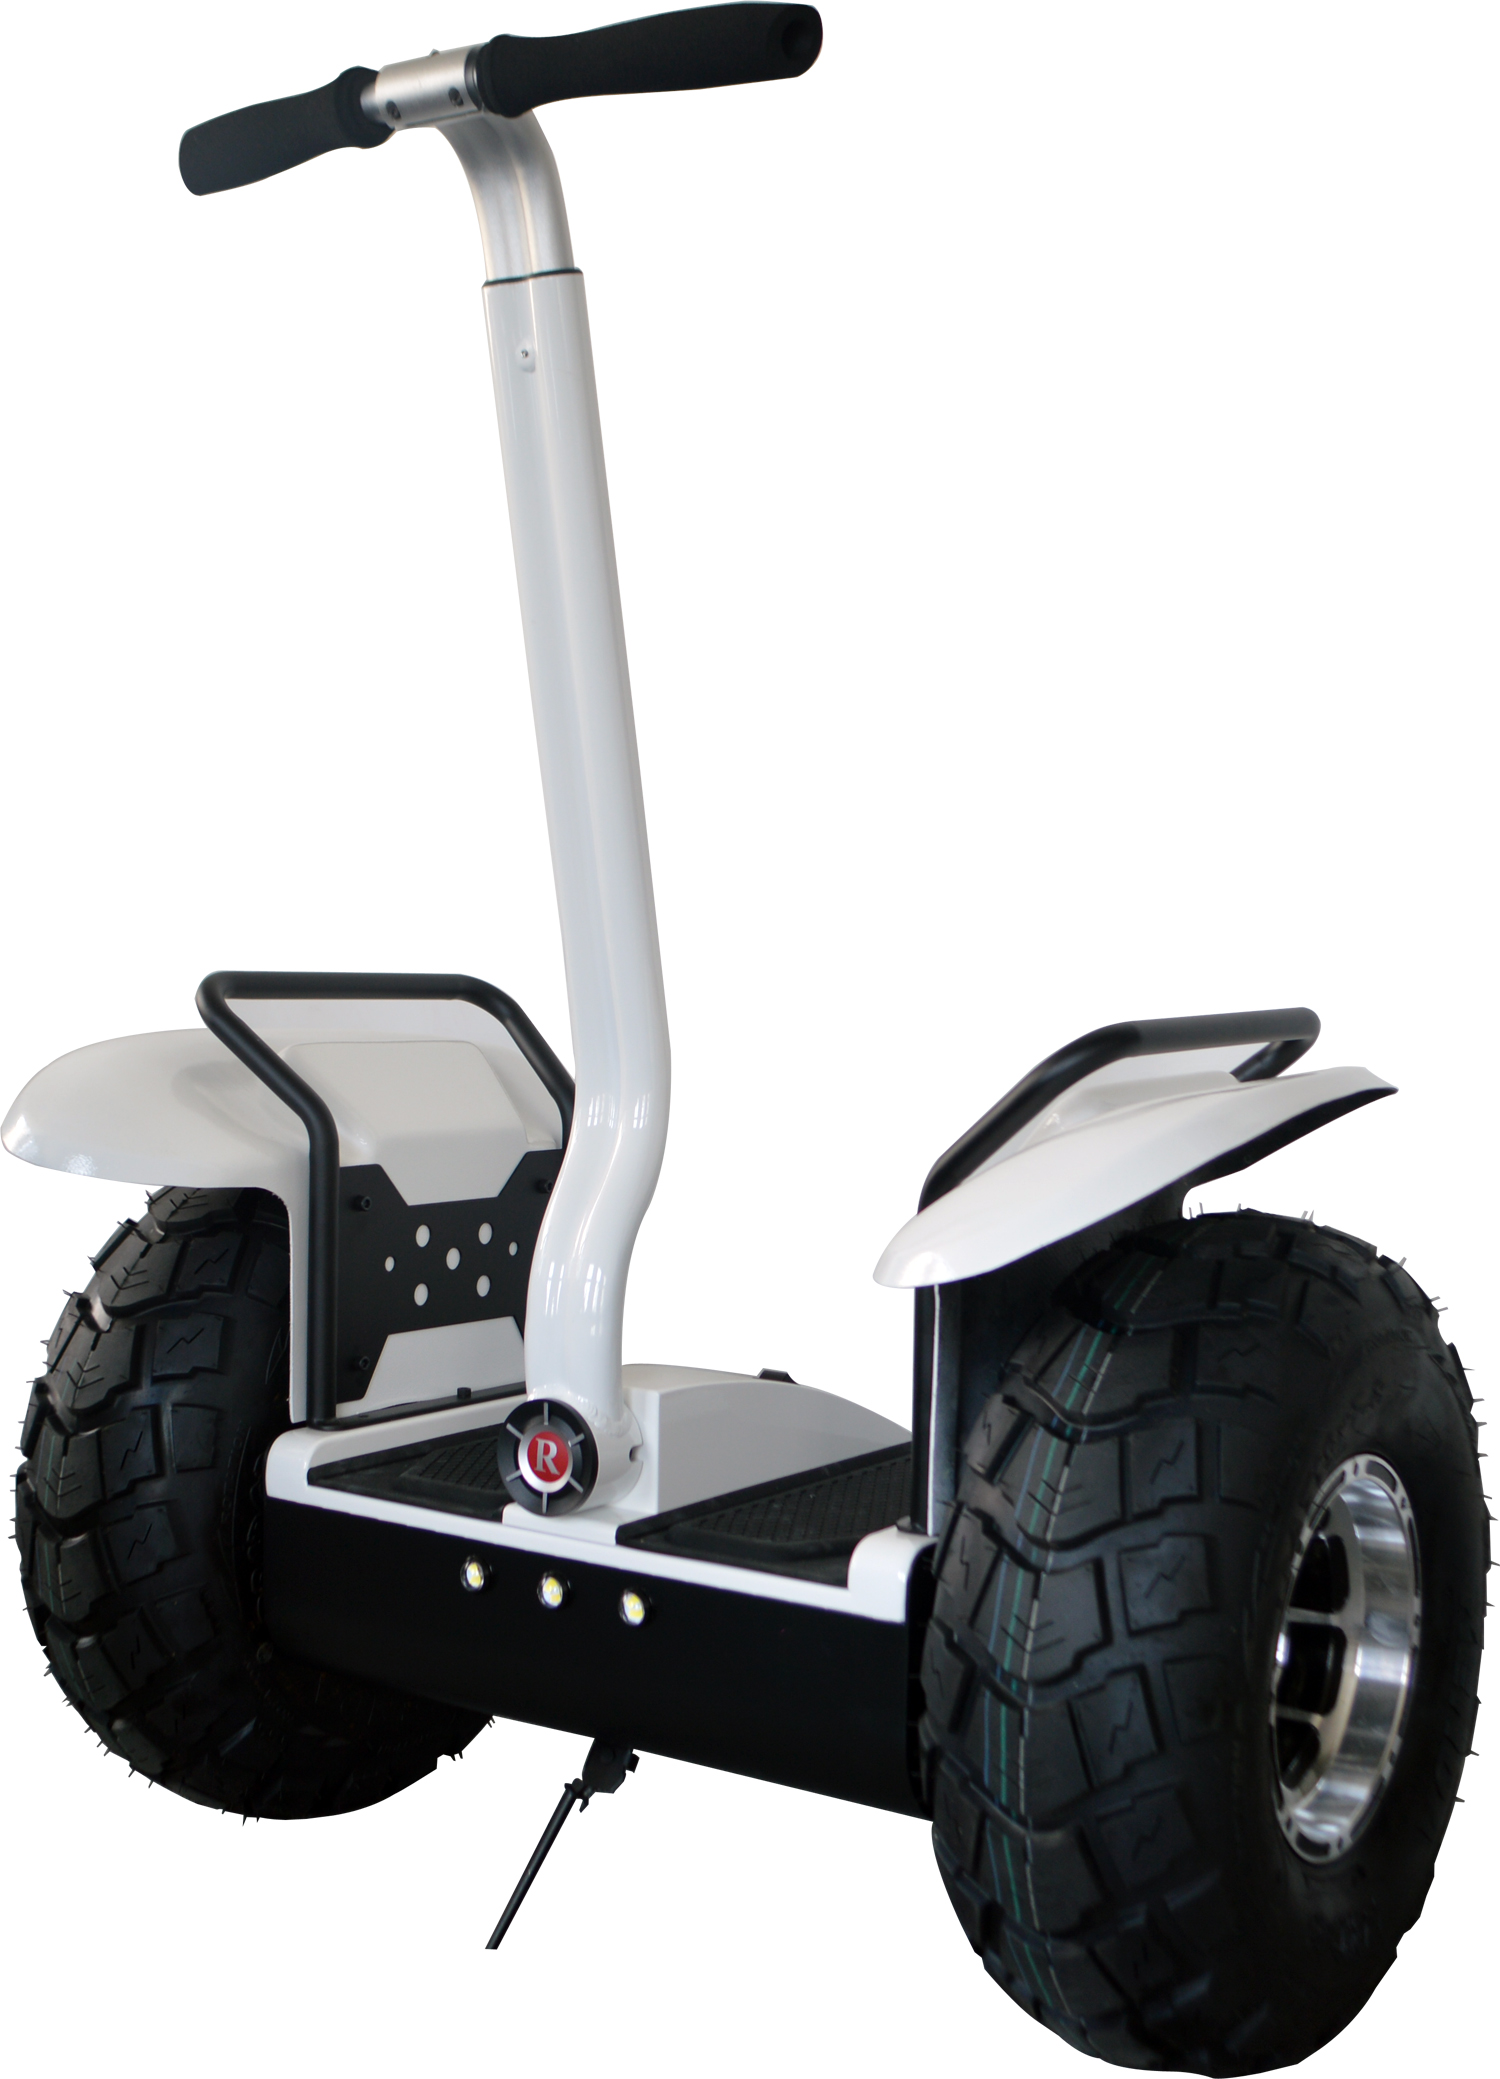 How Much Do Segways Cost And An Alternative To Segway Human